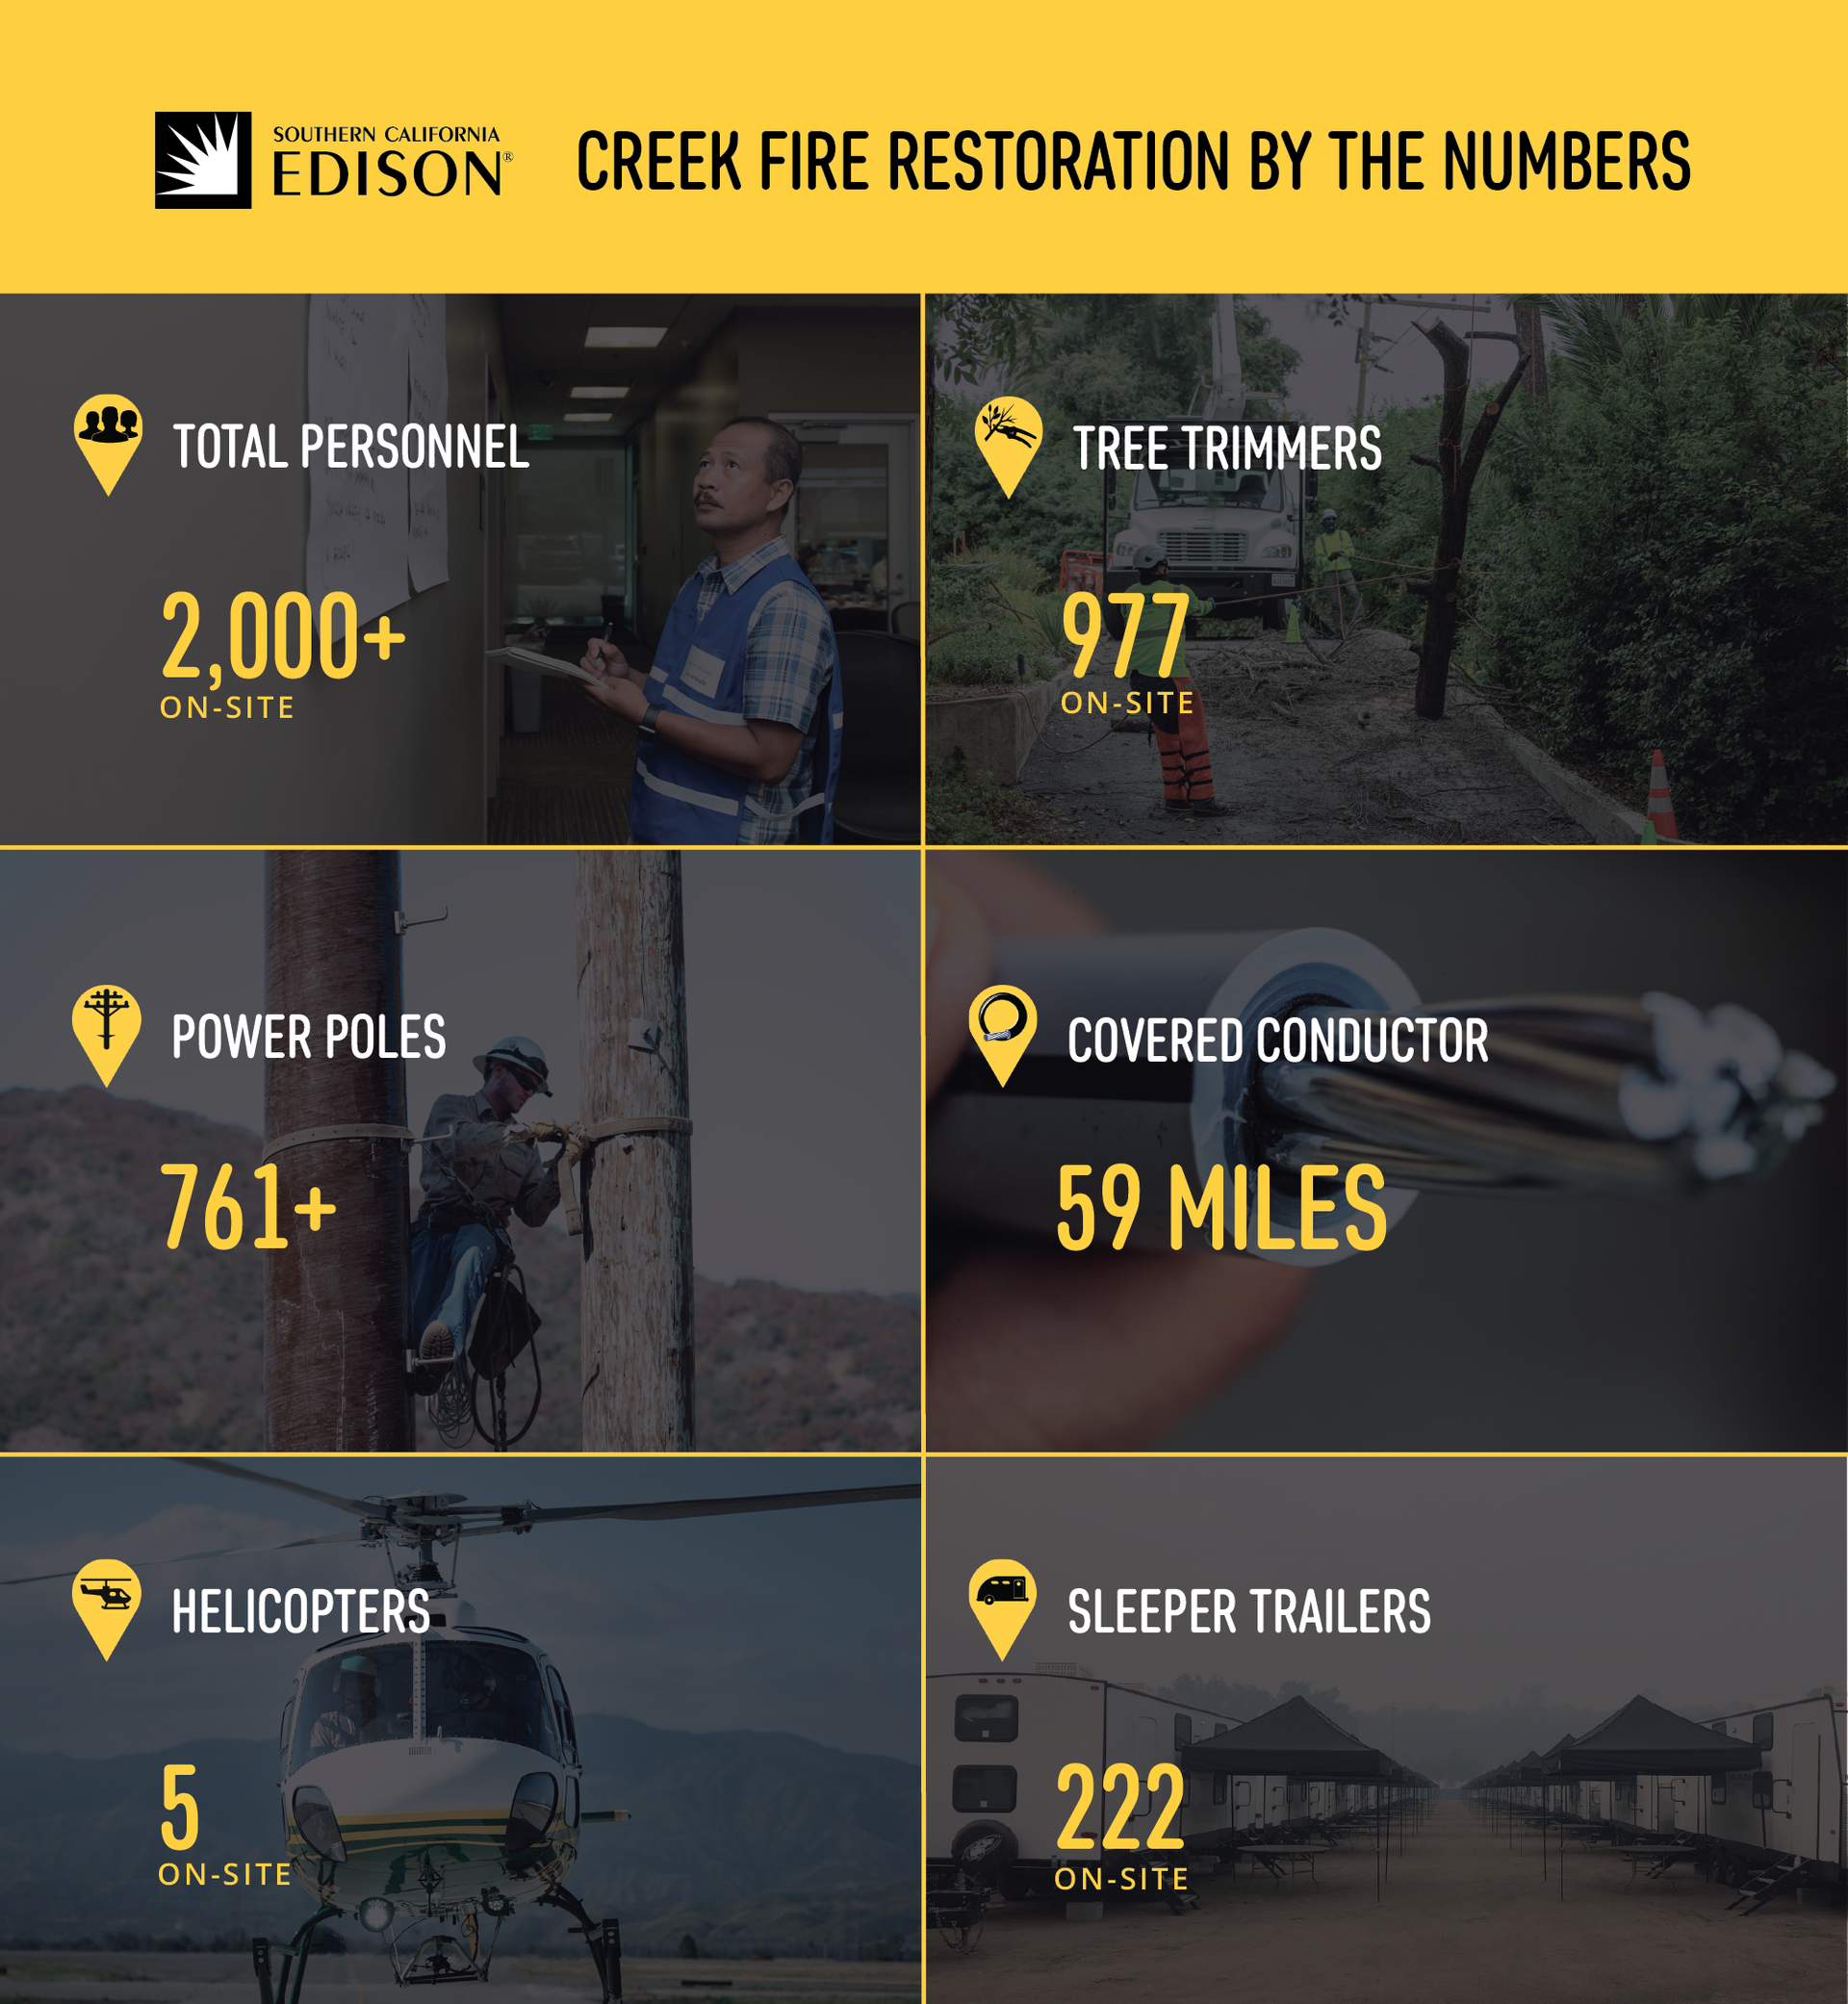 This infographic shows the personnel and equipment involved in the Creek Fire restoration.